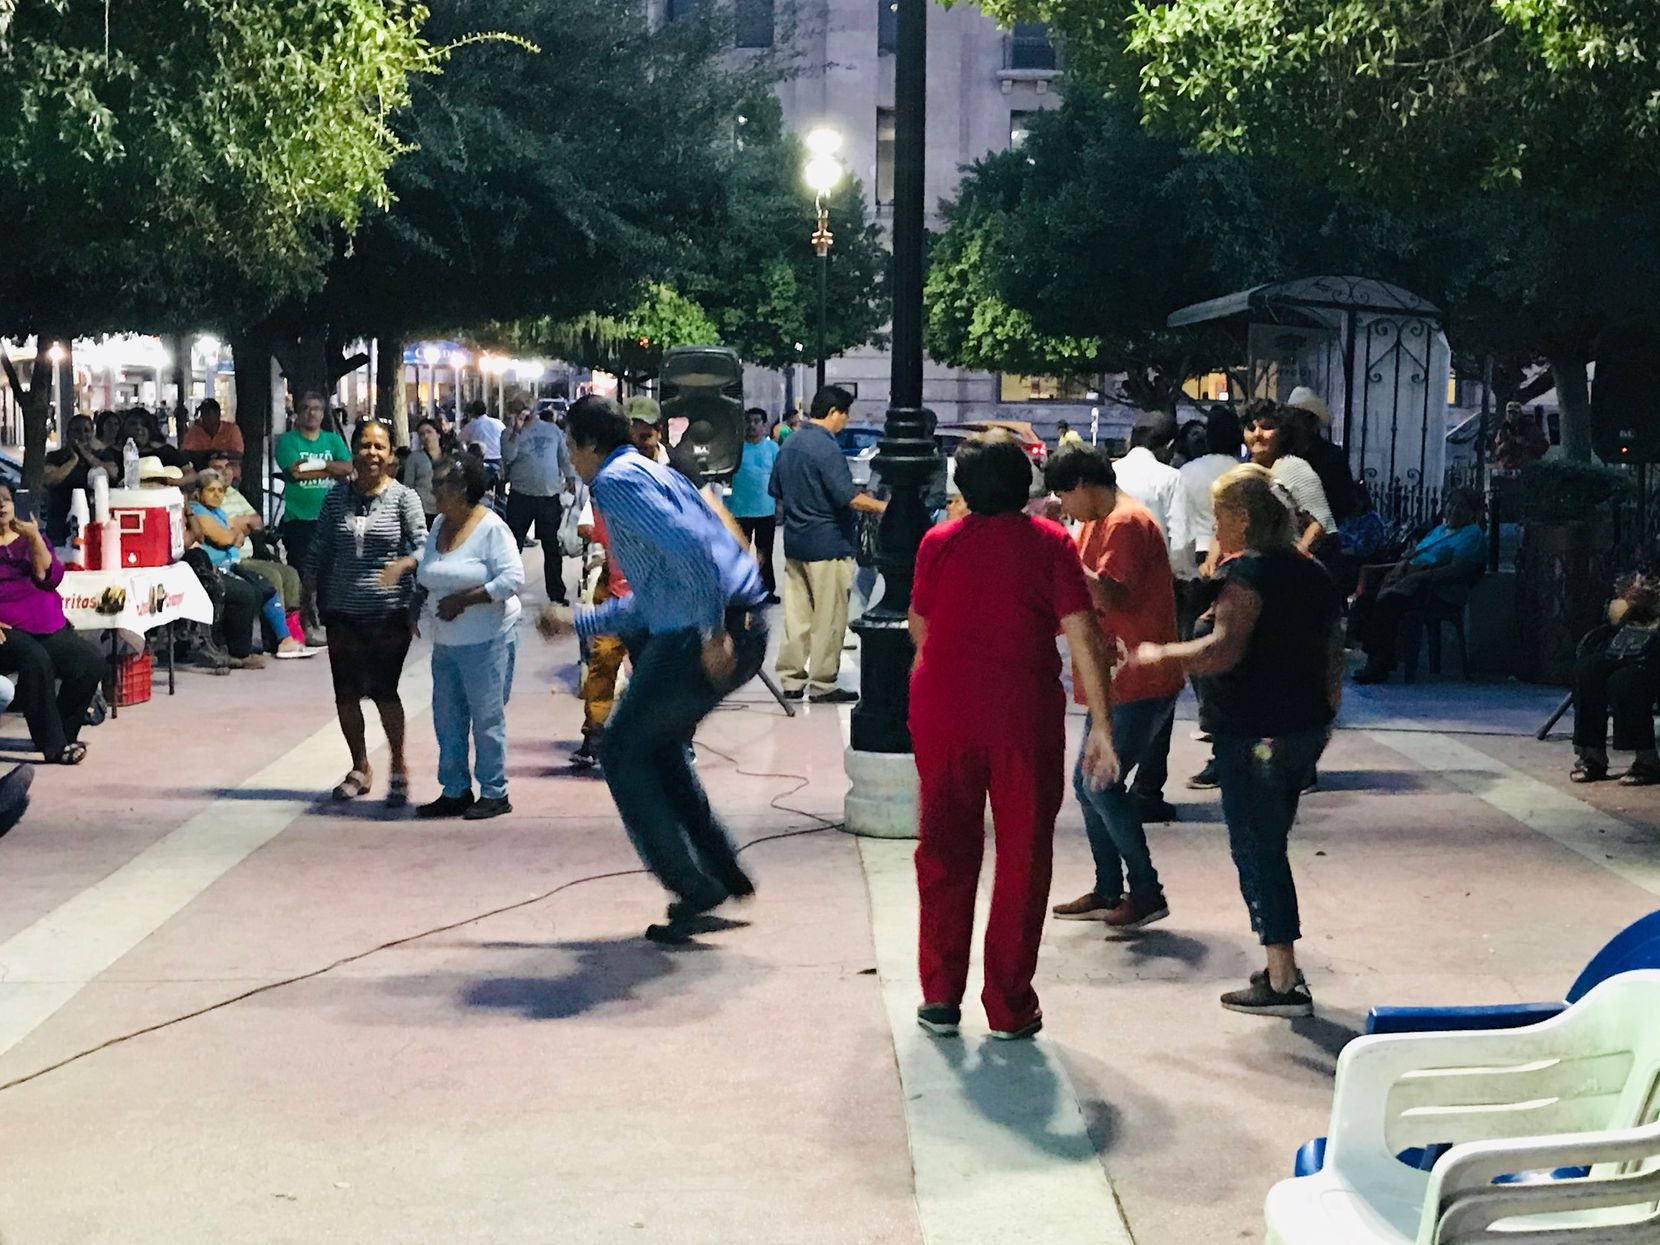 Amid the rising crime, growng economic uncertainty, life goes on in Torreon, Coahuila where Mexicans turn out for community event that includes dancing. Lorena Maciel Rodriguez, far right, explains she's not ready to give up on new president.